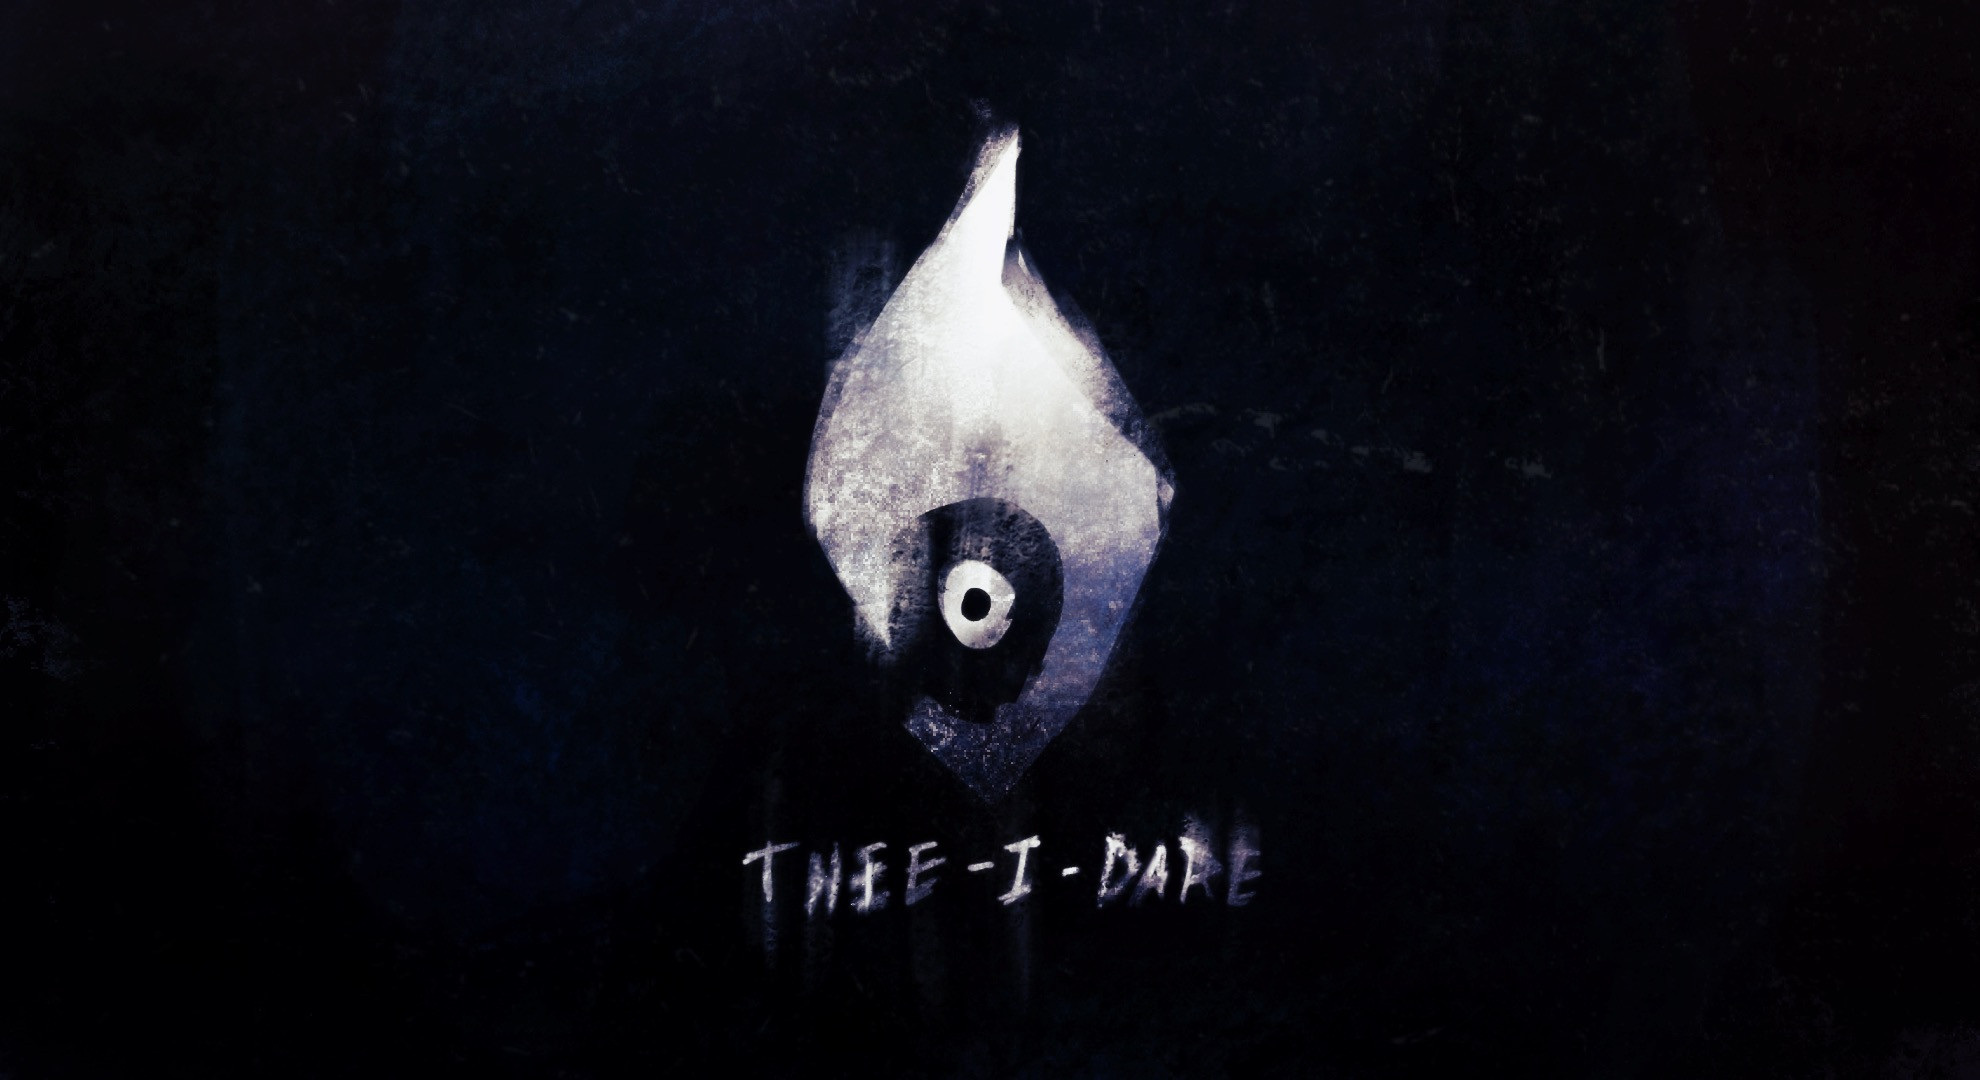 THEE-I-DARE - Focus on 'white flame burning in darkness' aspect.